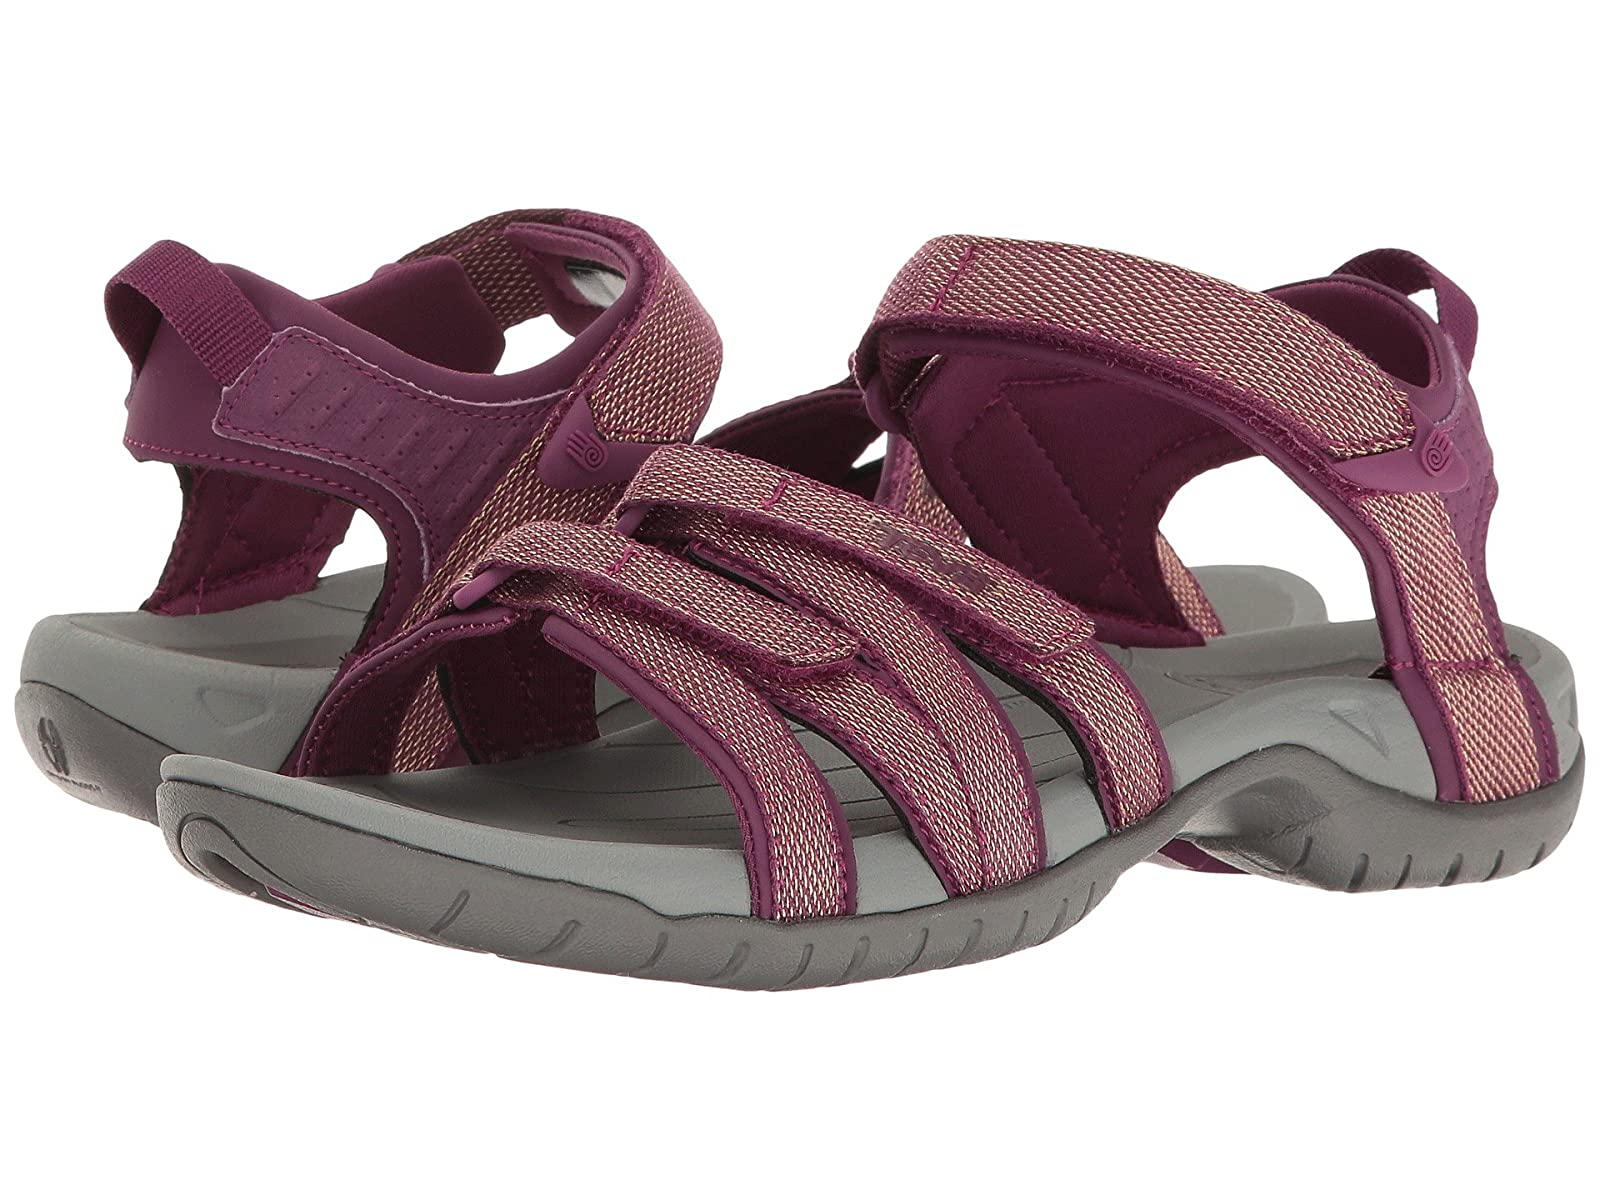 Teva TirraCheap and distinctive eye-catching shoes